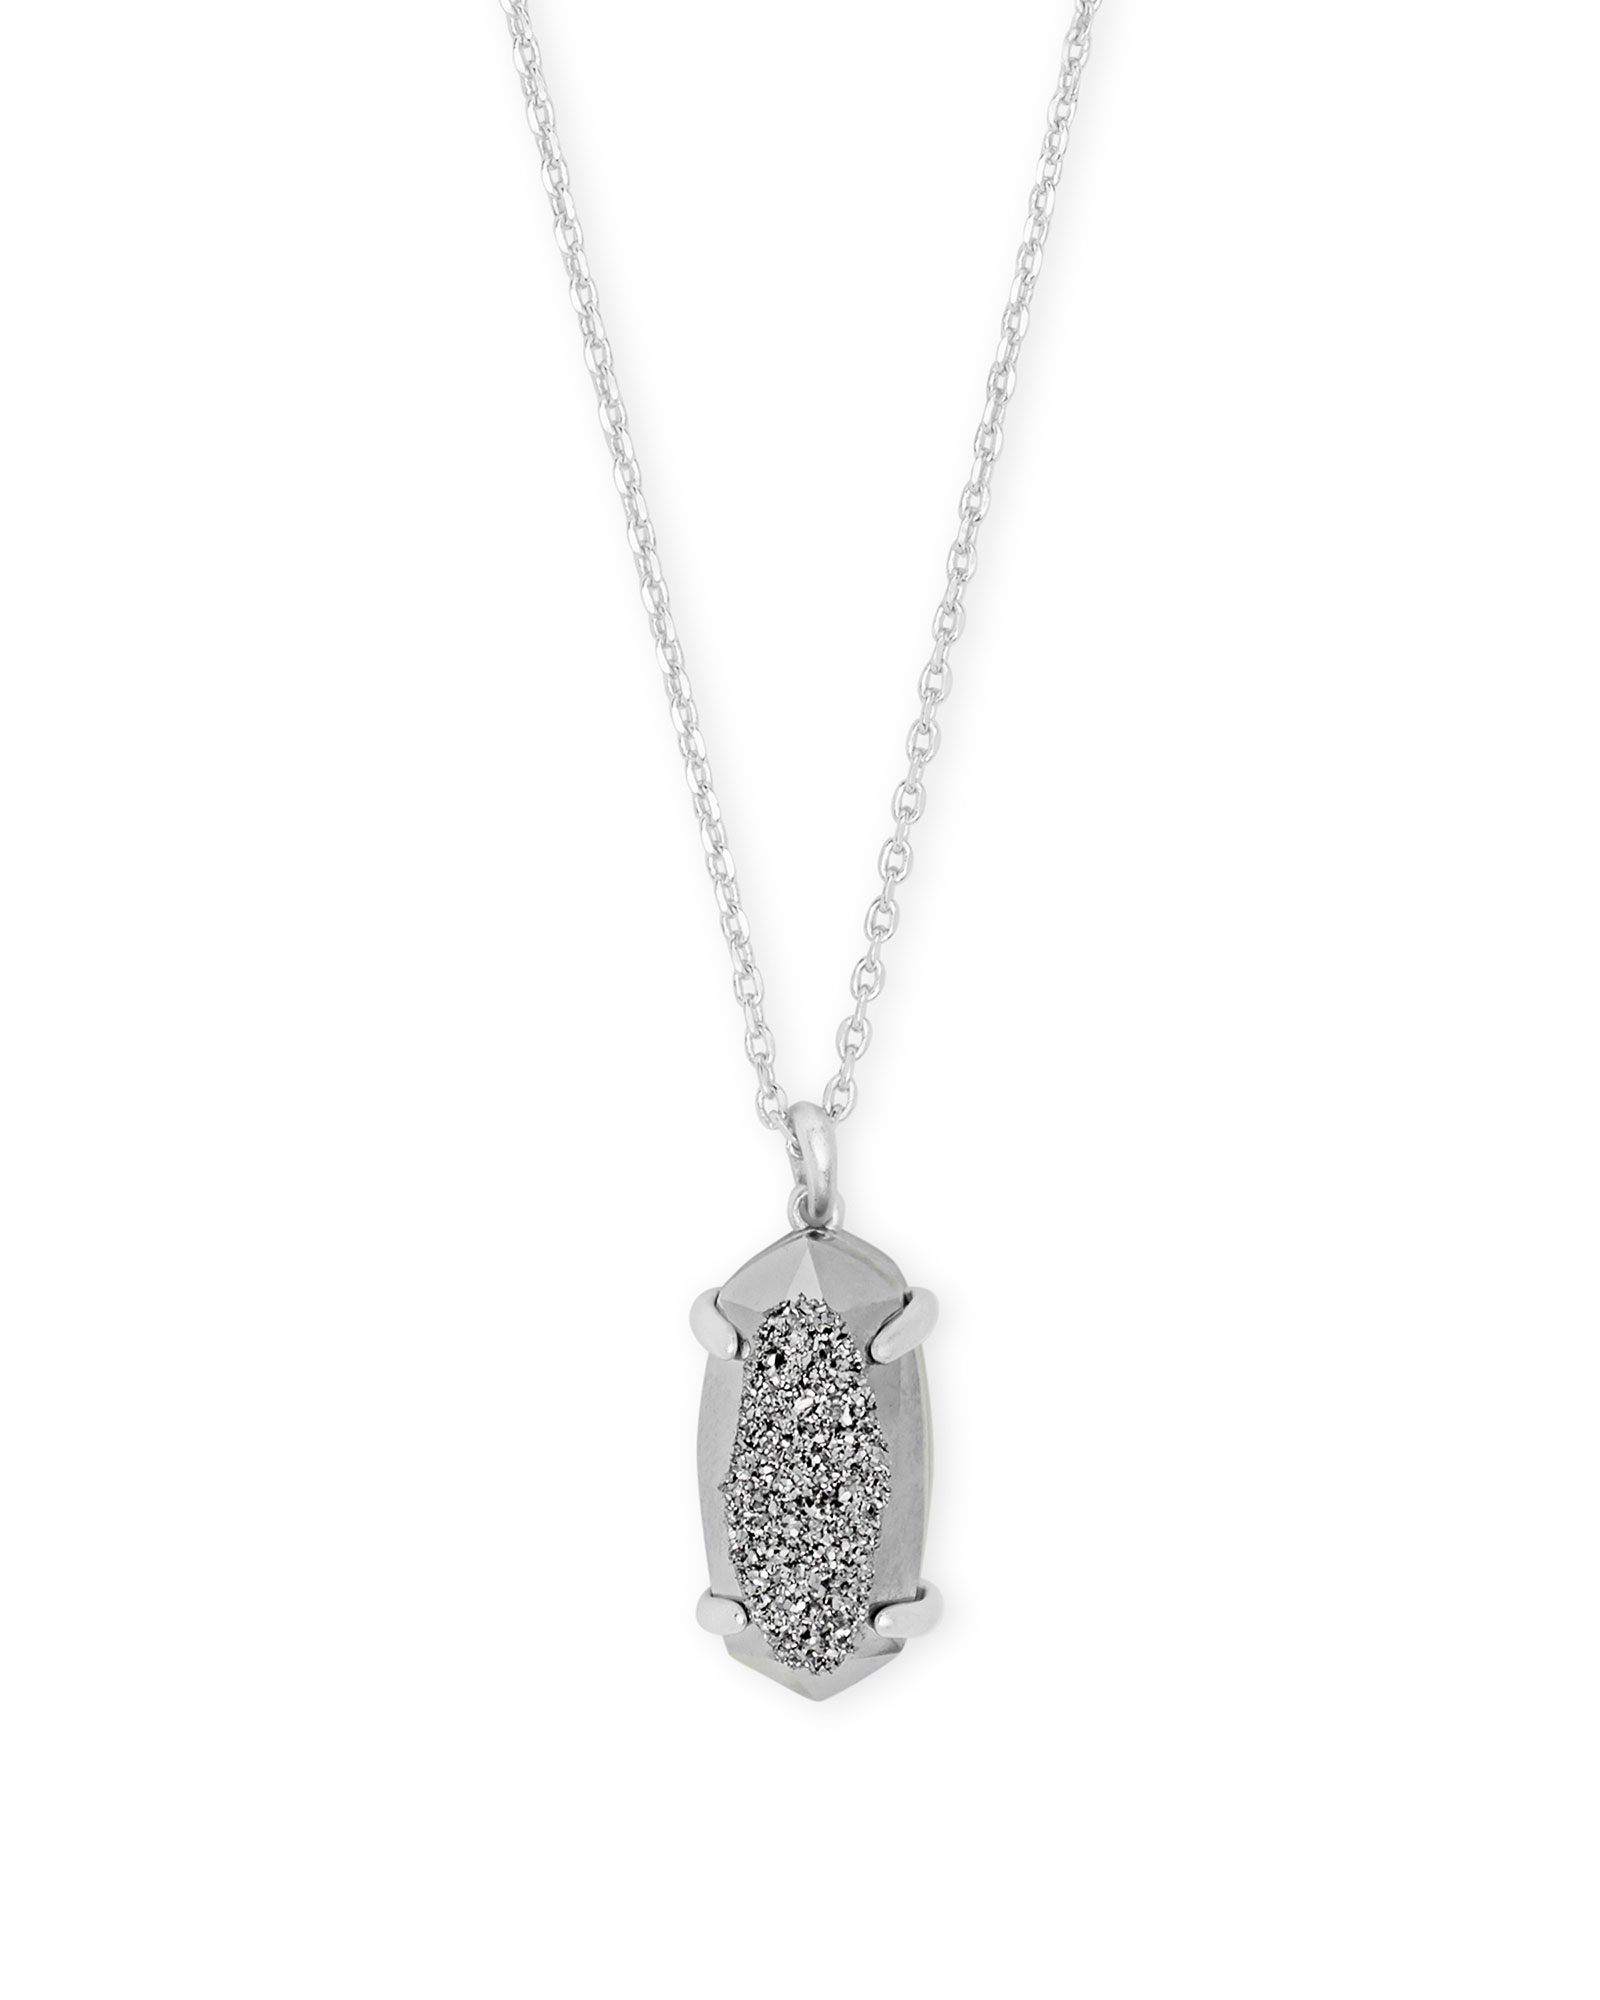 Harrison Silver Pendant Necklace In Platinum Drusy